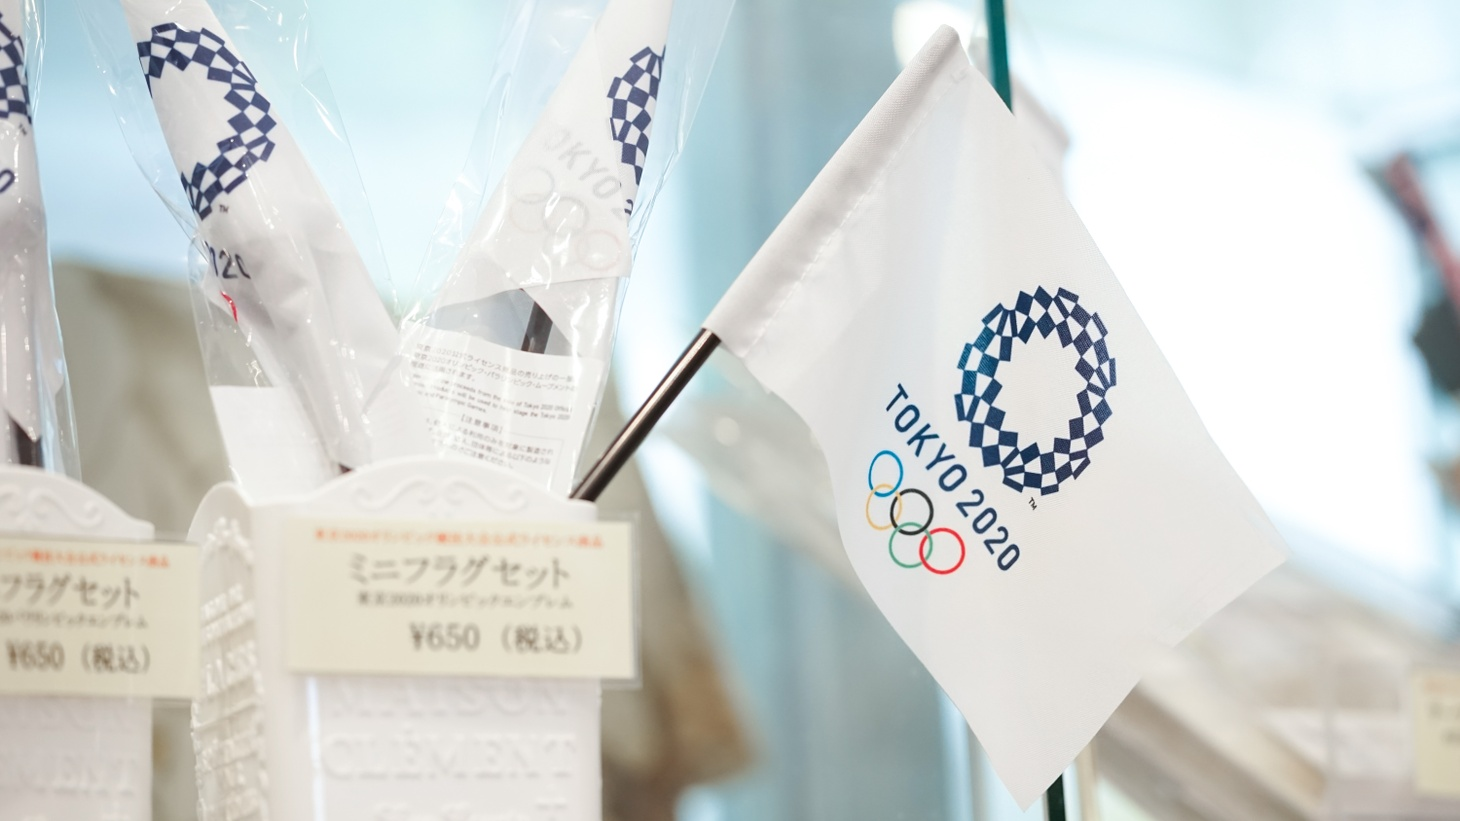 The Olympics are still set to go ahead in Japan, even after Tokyo declared a state of emergency following a spike in coronavirus cases, which meant barring spectators from most events.